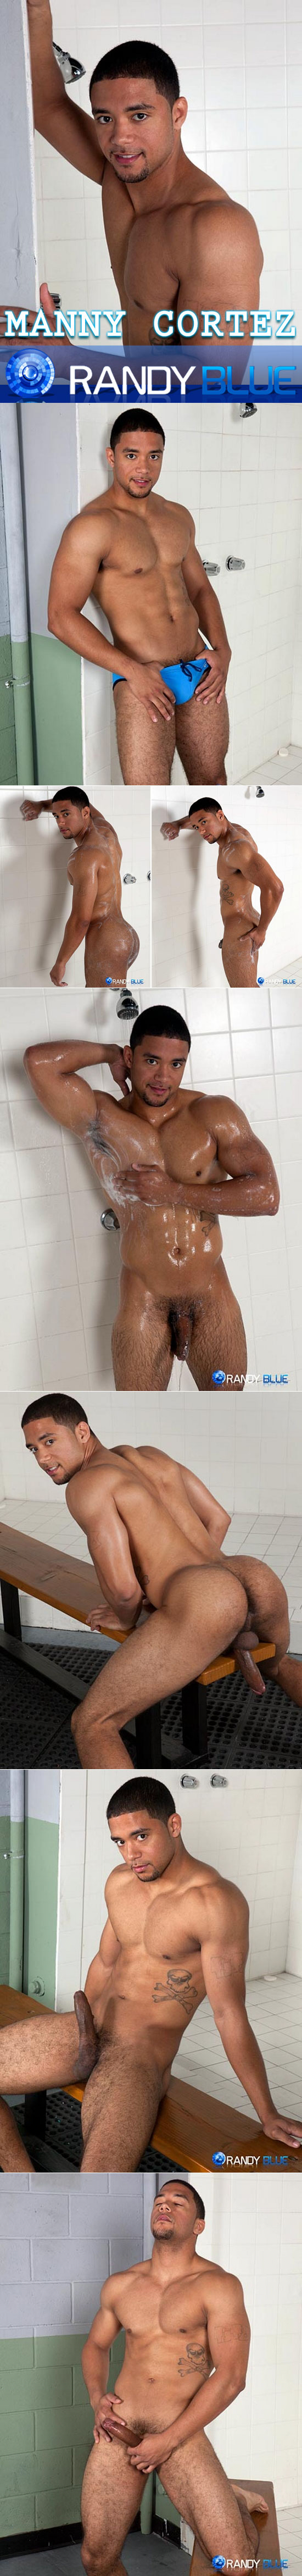 Manny Cortez for Randy Blue